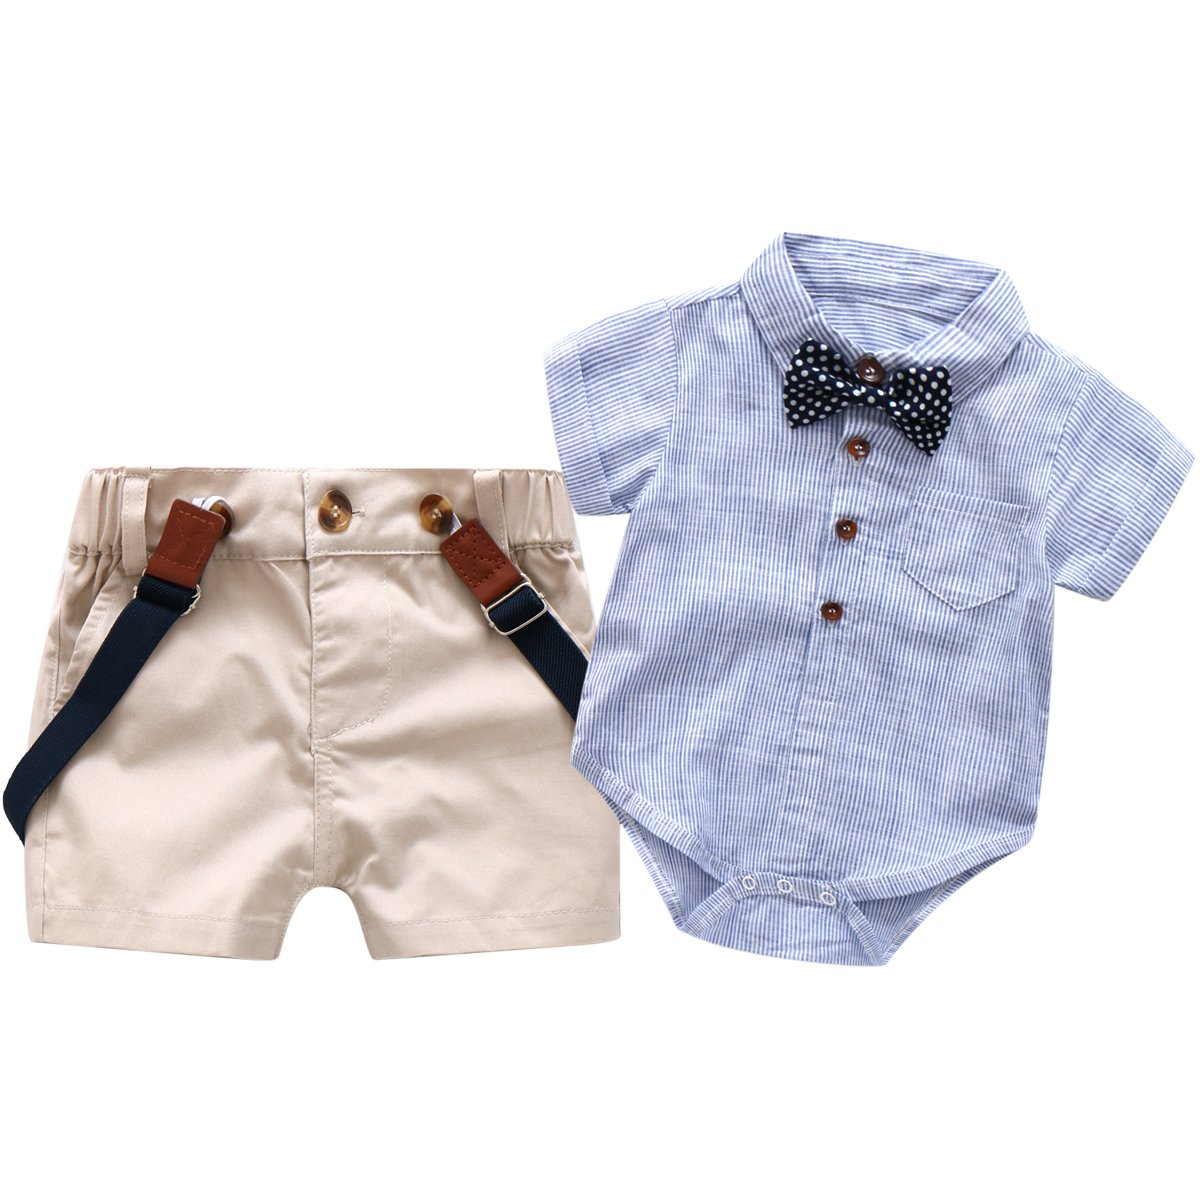 Boarnseorl Baby Boys Short Sleeve Gentleman Outfits Suits, Infant Blue Shirt+Bib Pants+Tie Overalls Clothing Set 59(3-6 m) by Boarnseorl